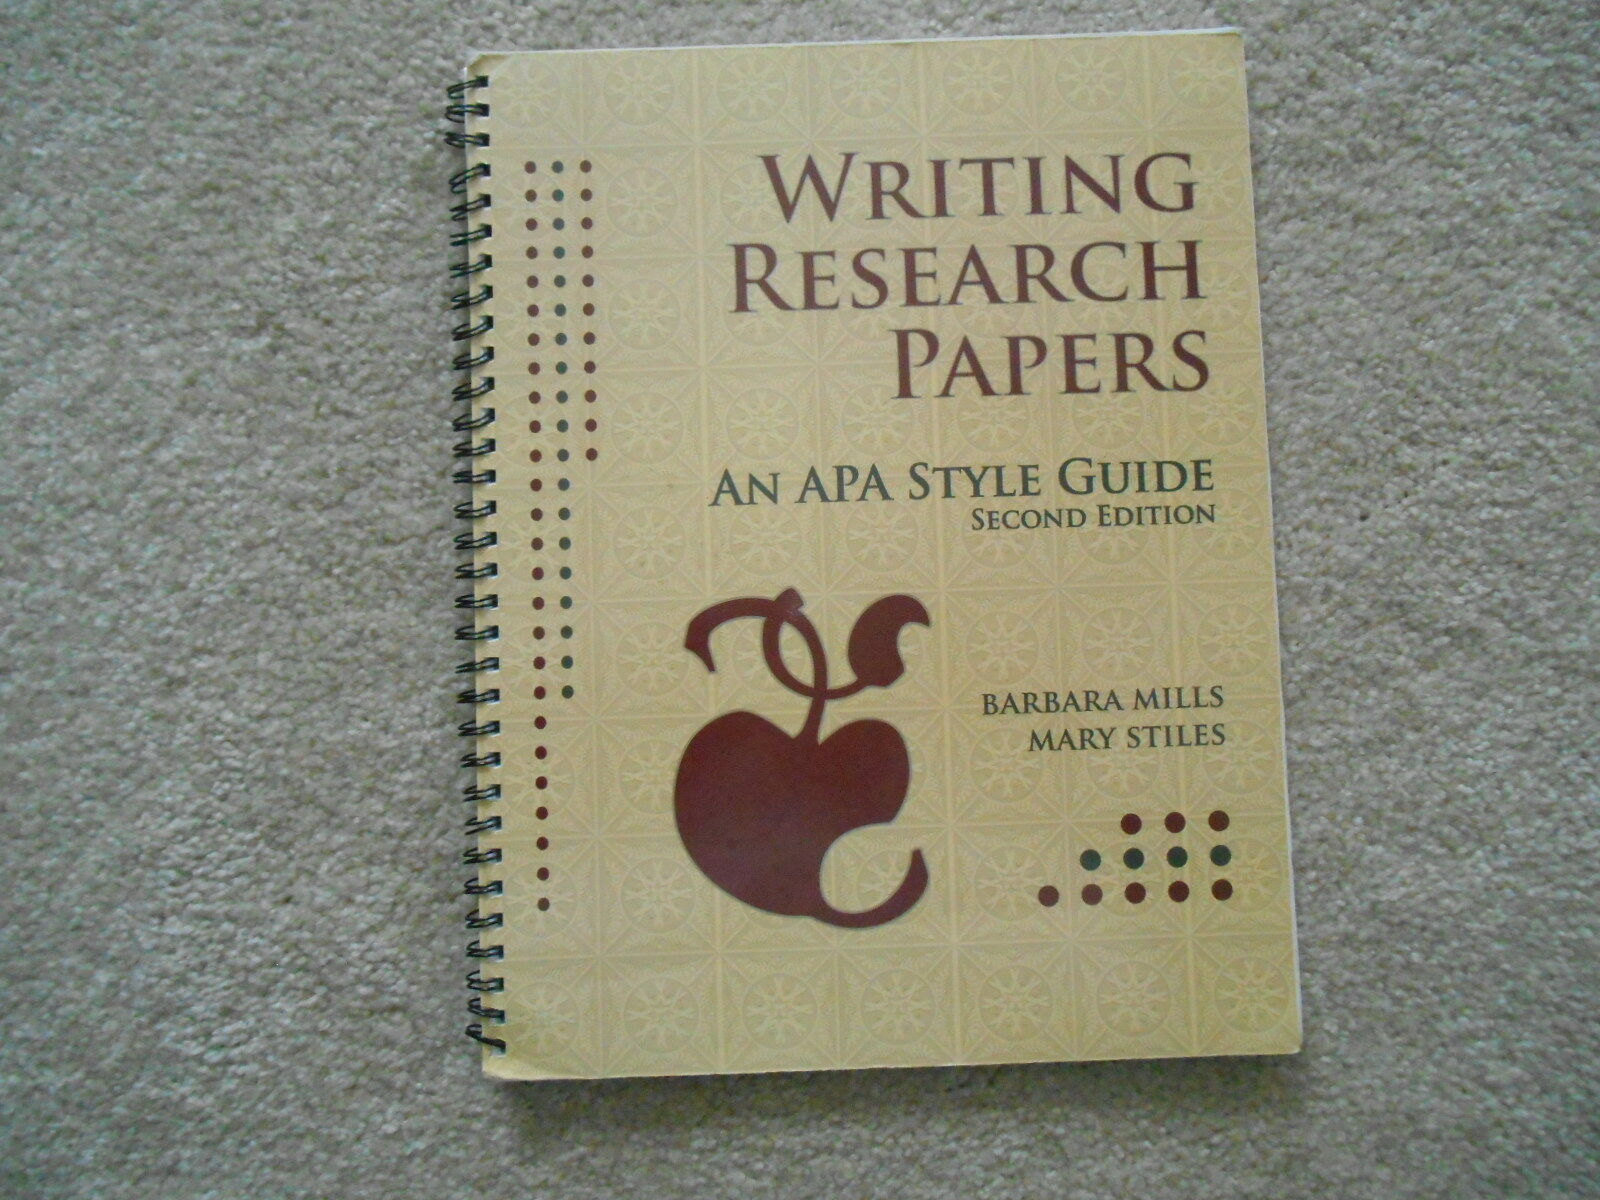 018 Apa Style Guide For Writing Researchs S L1600 Best Research Papers Full